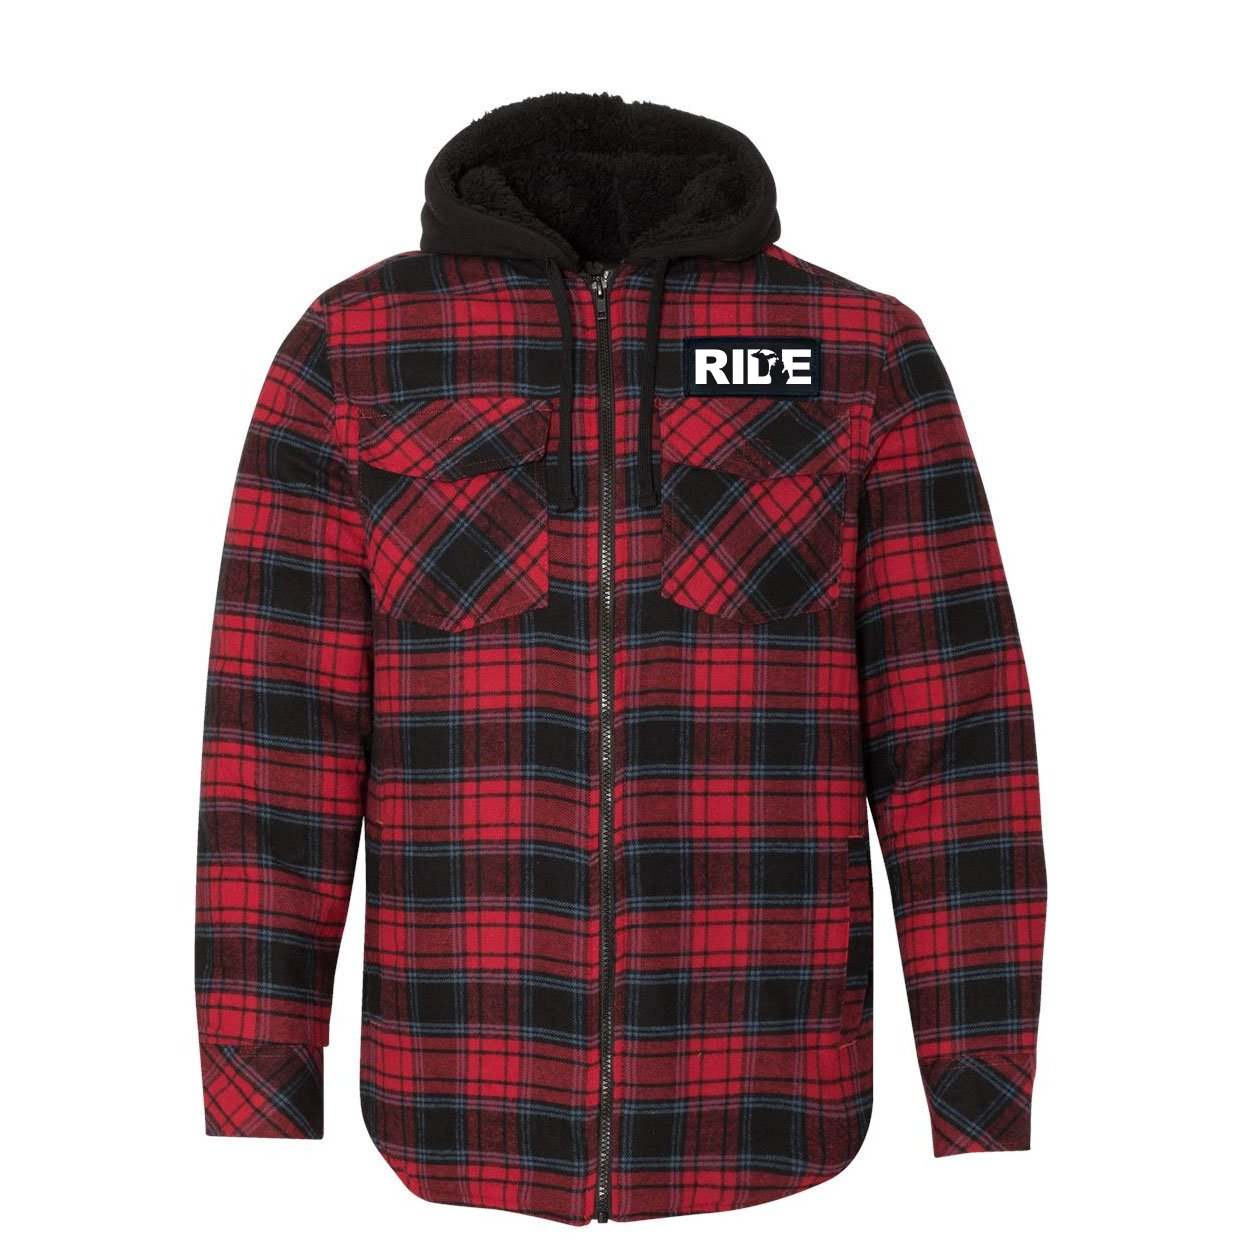 Ride Michigan Classic Unisex Full Zip Woven Patch Hooded Flannel Jacket Red/Black Buffalo (White Logo)